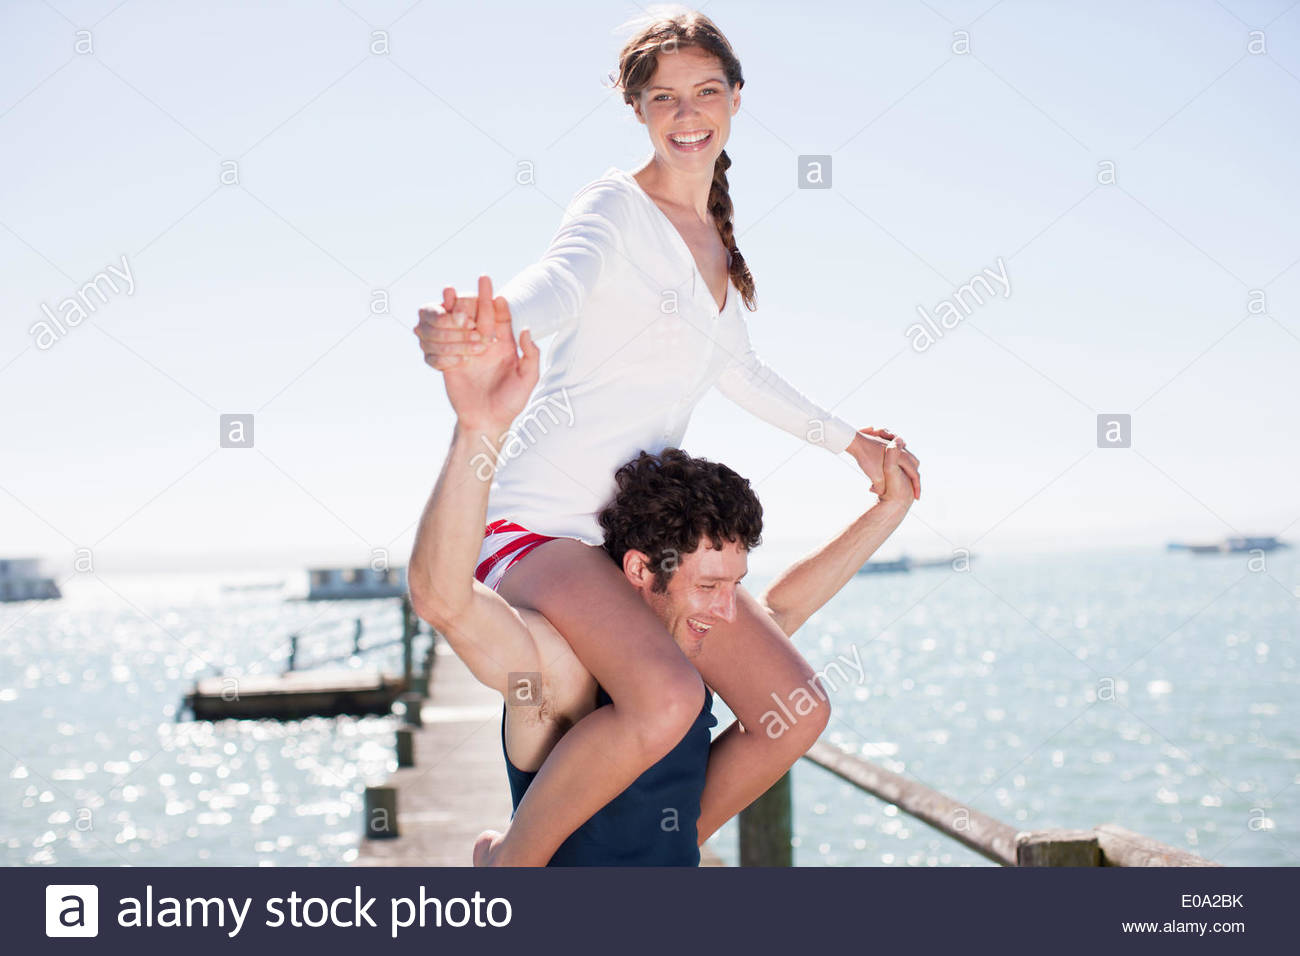 Man carrying wife on shoulders on pier at ocean - Stock Image